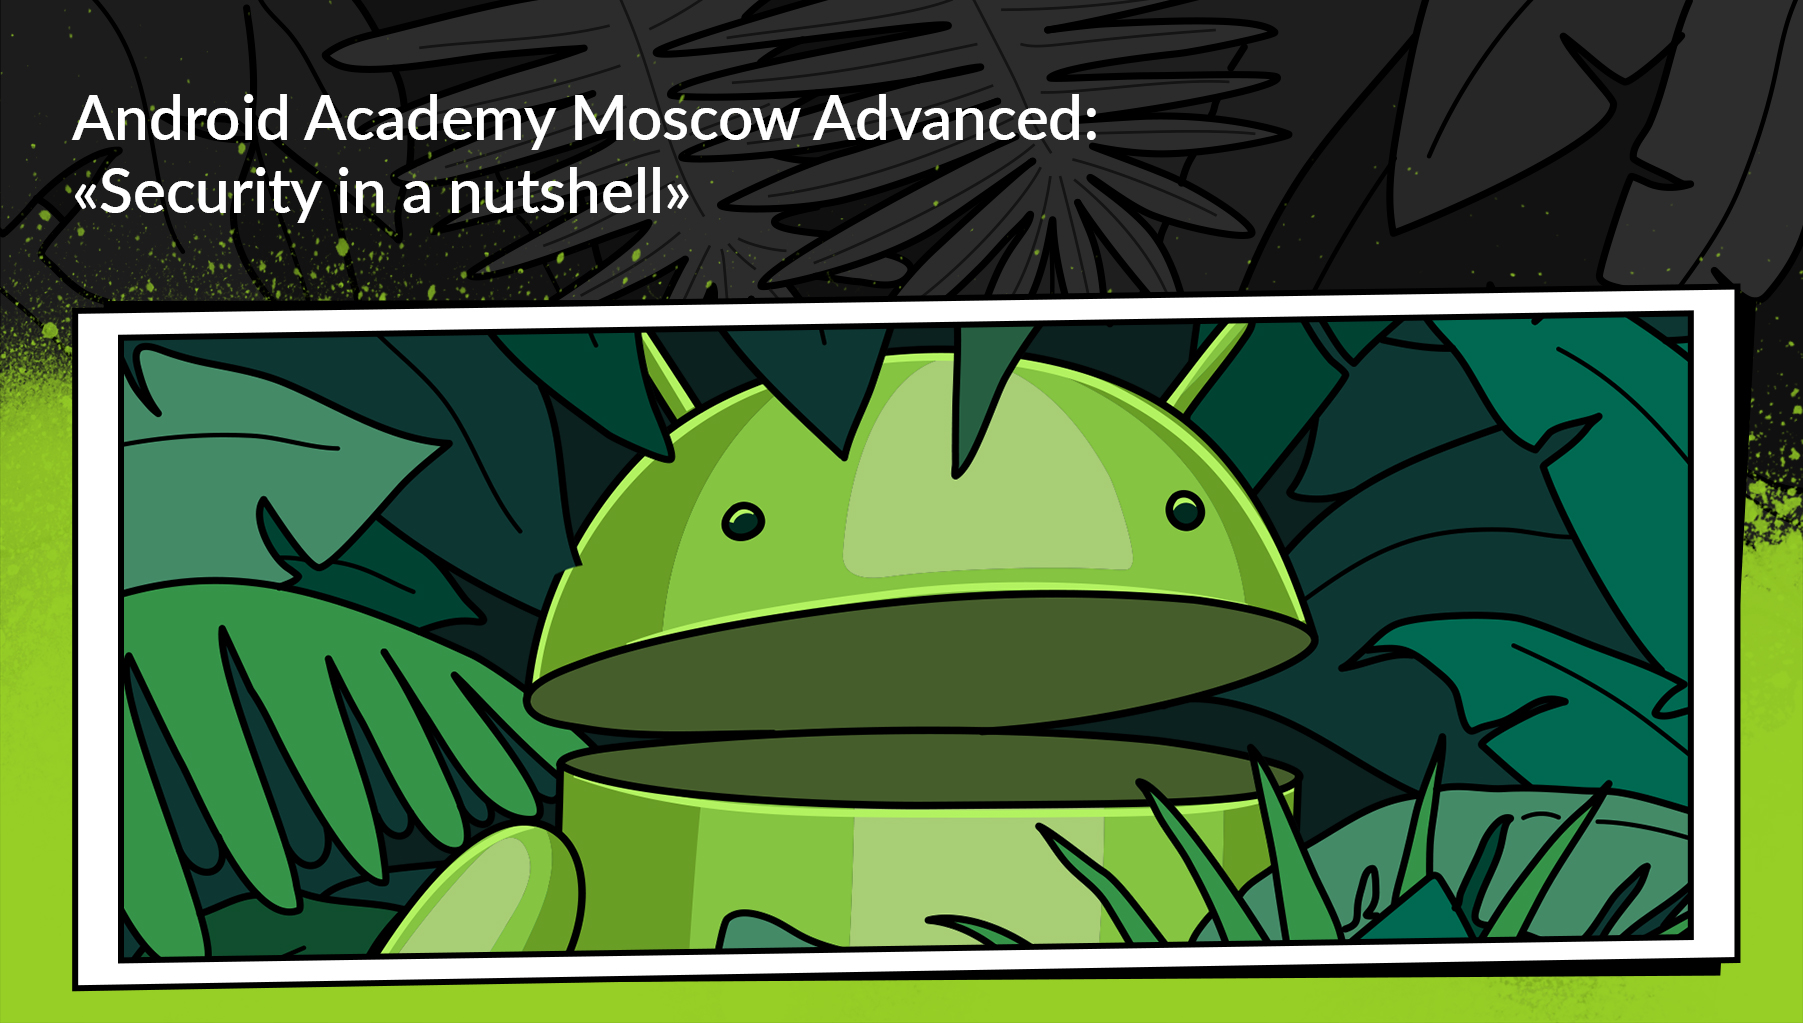 Android Academy MSK #2: Security in a nutshell